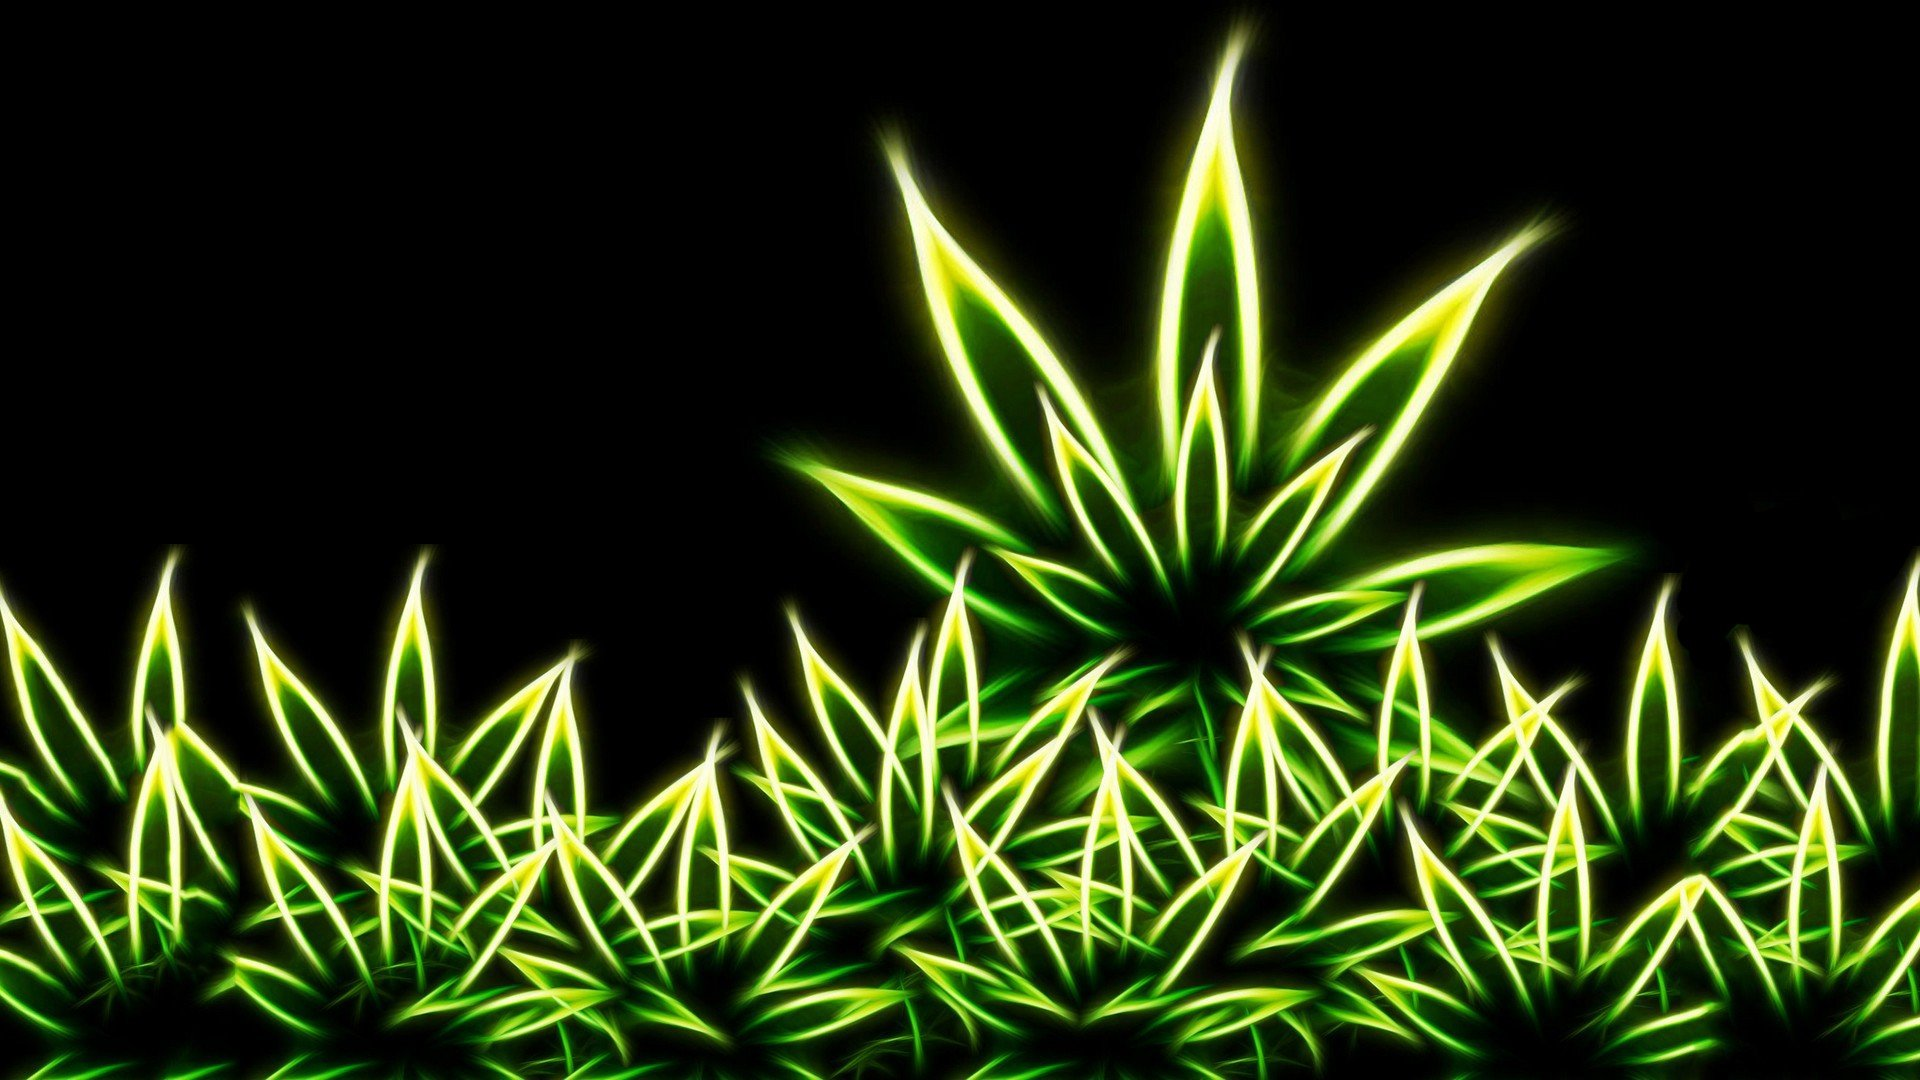 Drugs Grass Marijuana Digital Art Weeds Fractal Wallpaper